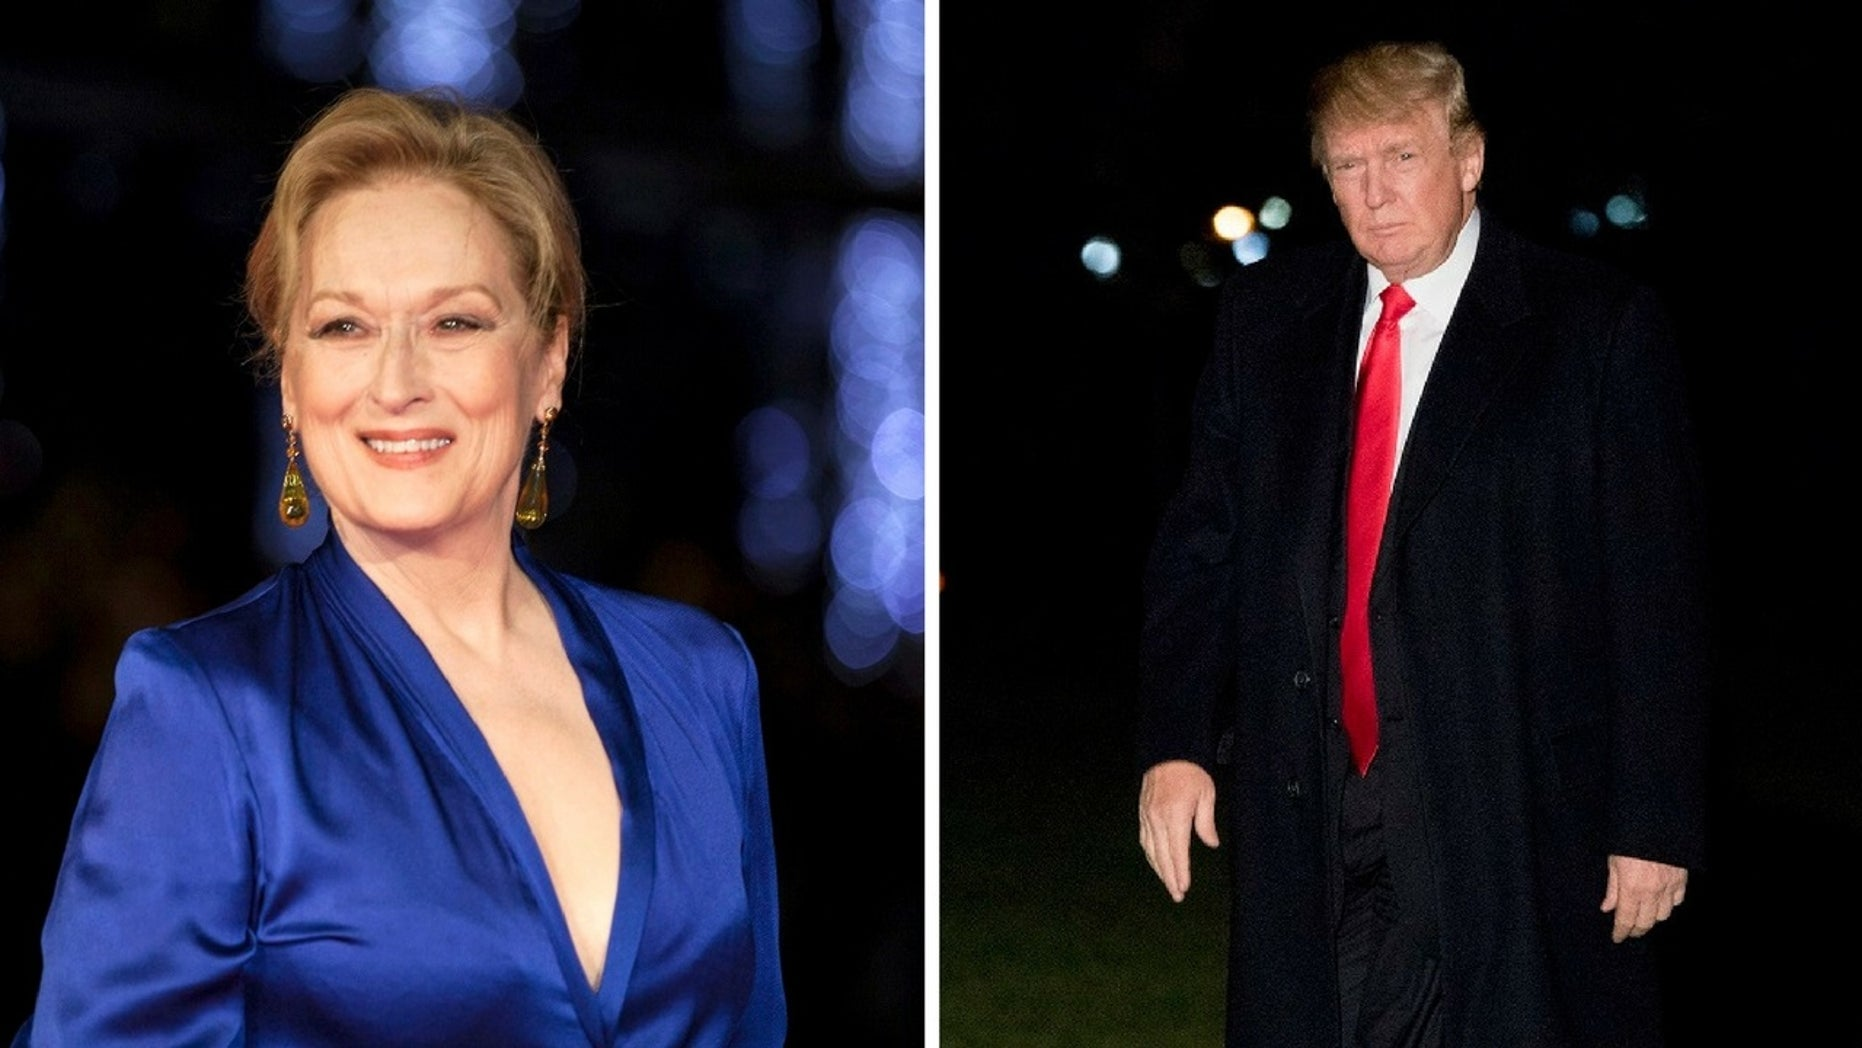 Meryl Streep said she has no interest in being a political figure during President Trump's tenure.